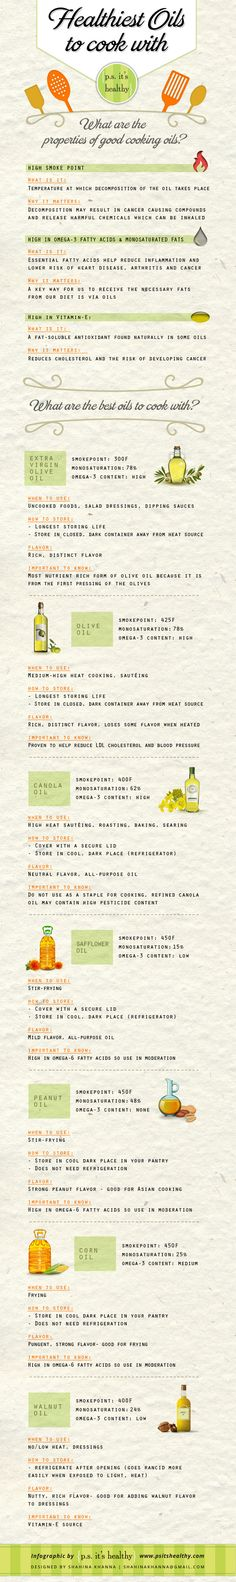 Healthy Cooking Oils!